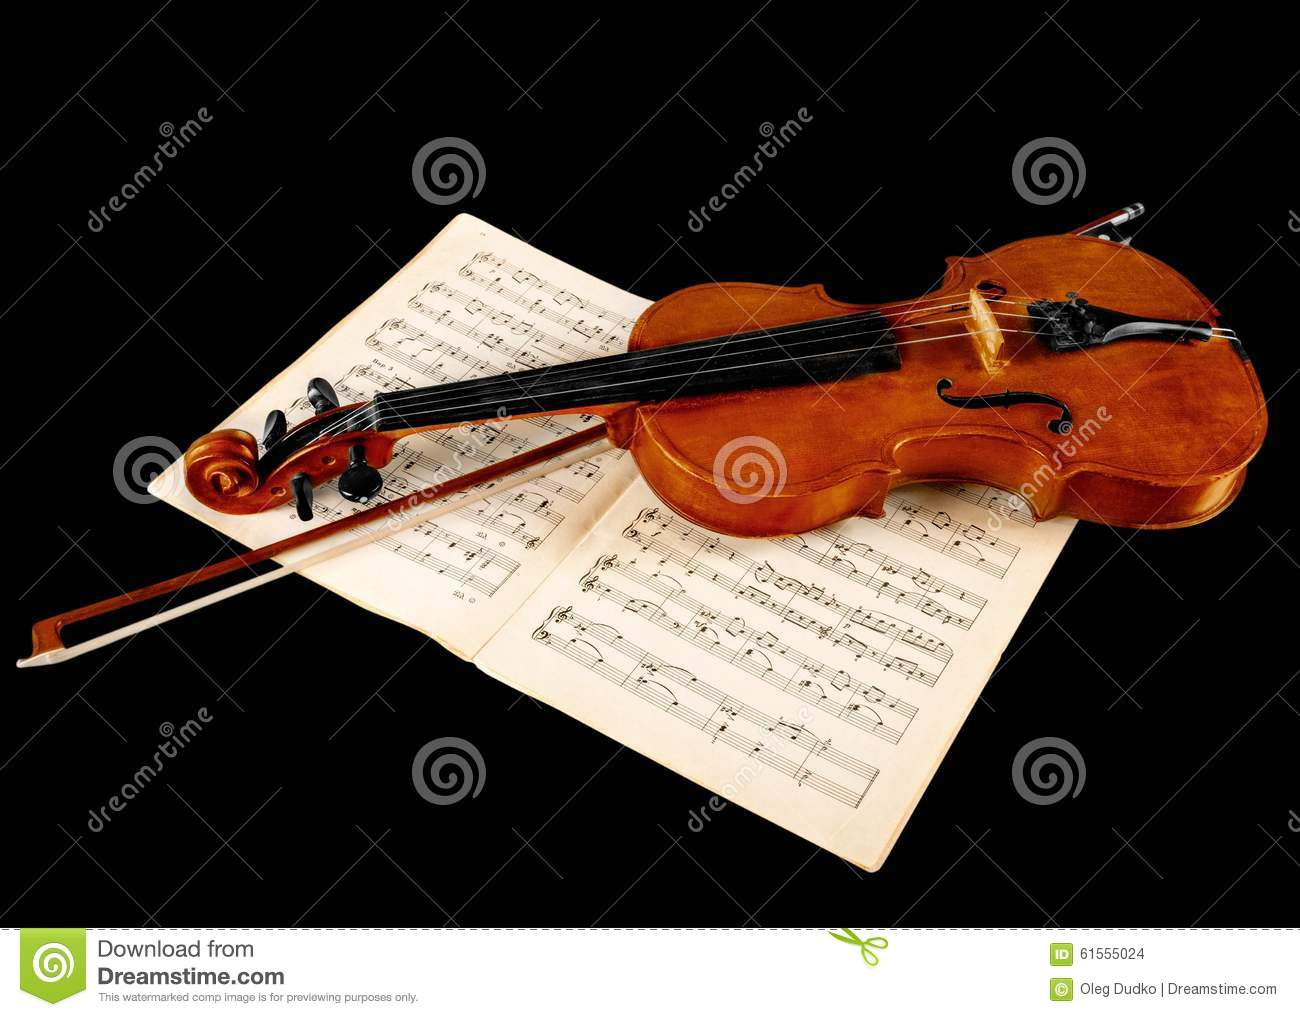 Violin stock photo  Image of mozart, sheet, paper, violin